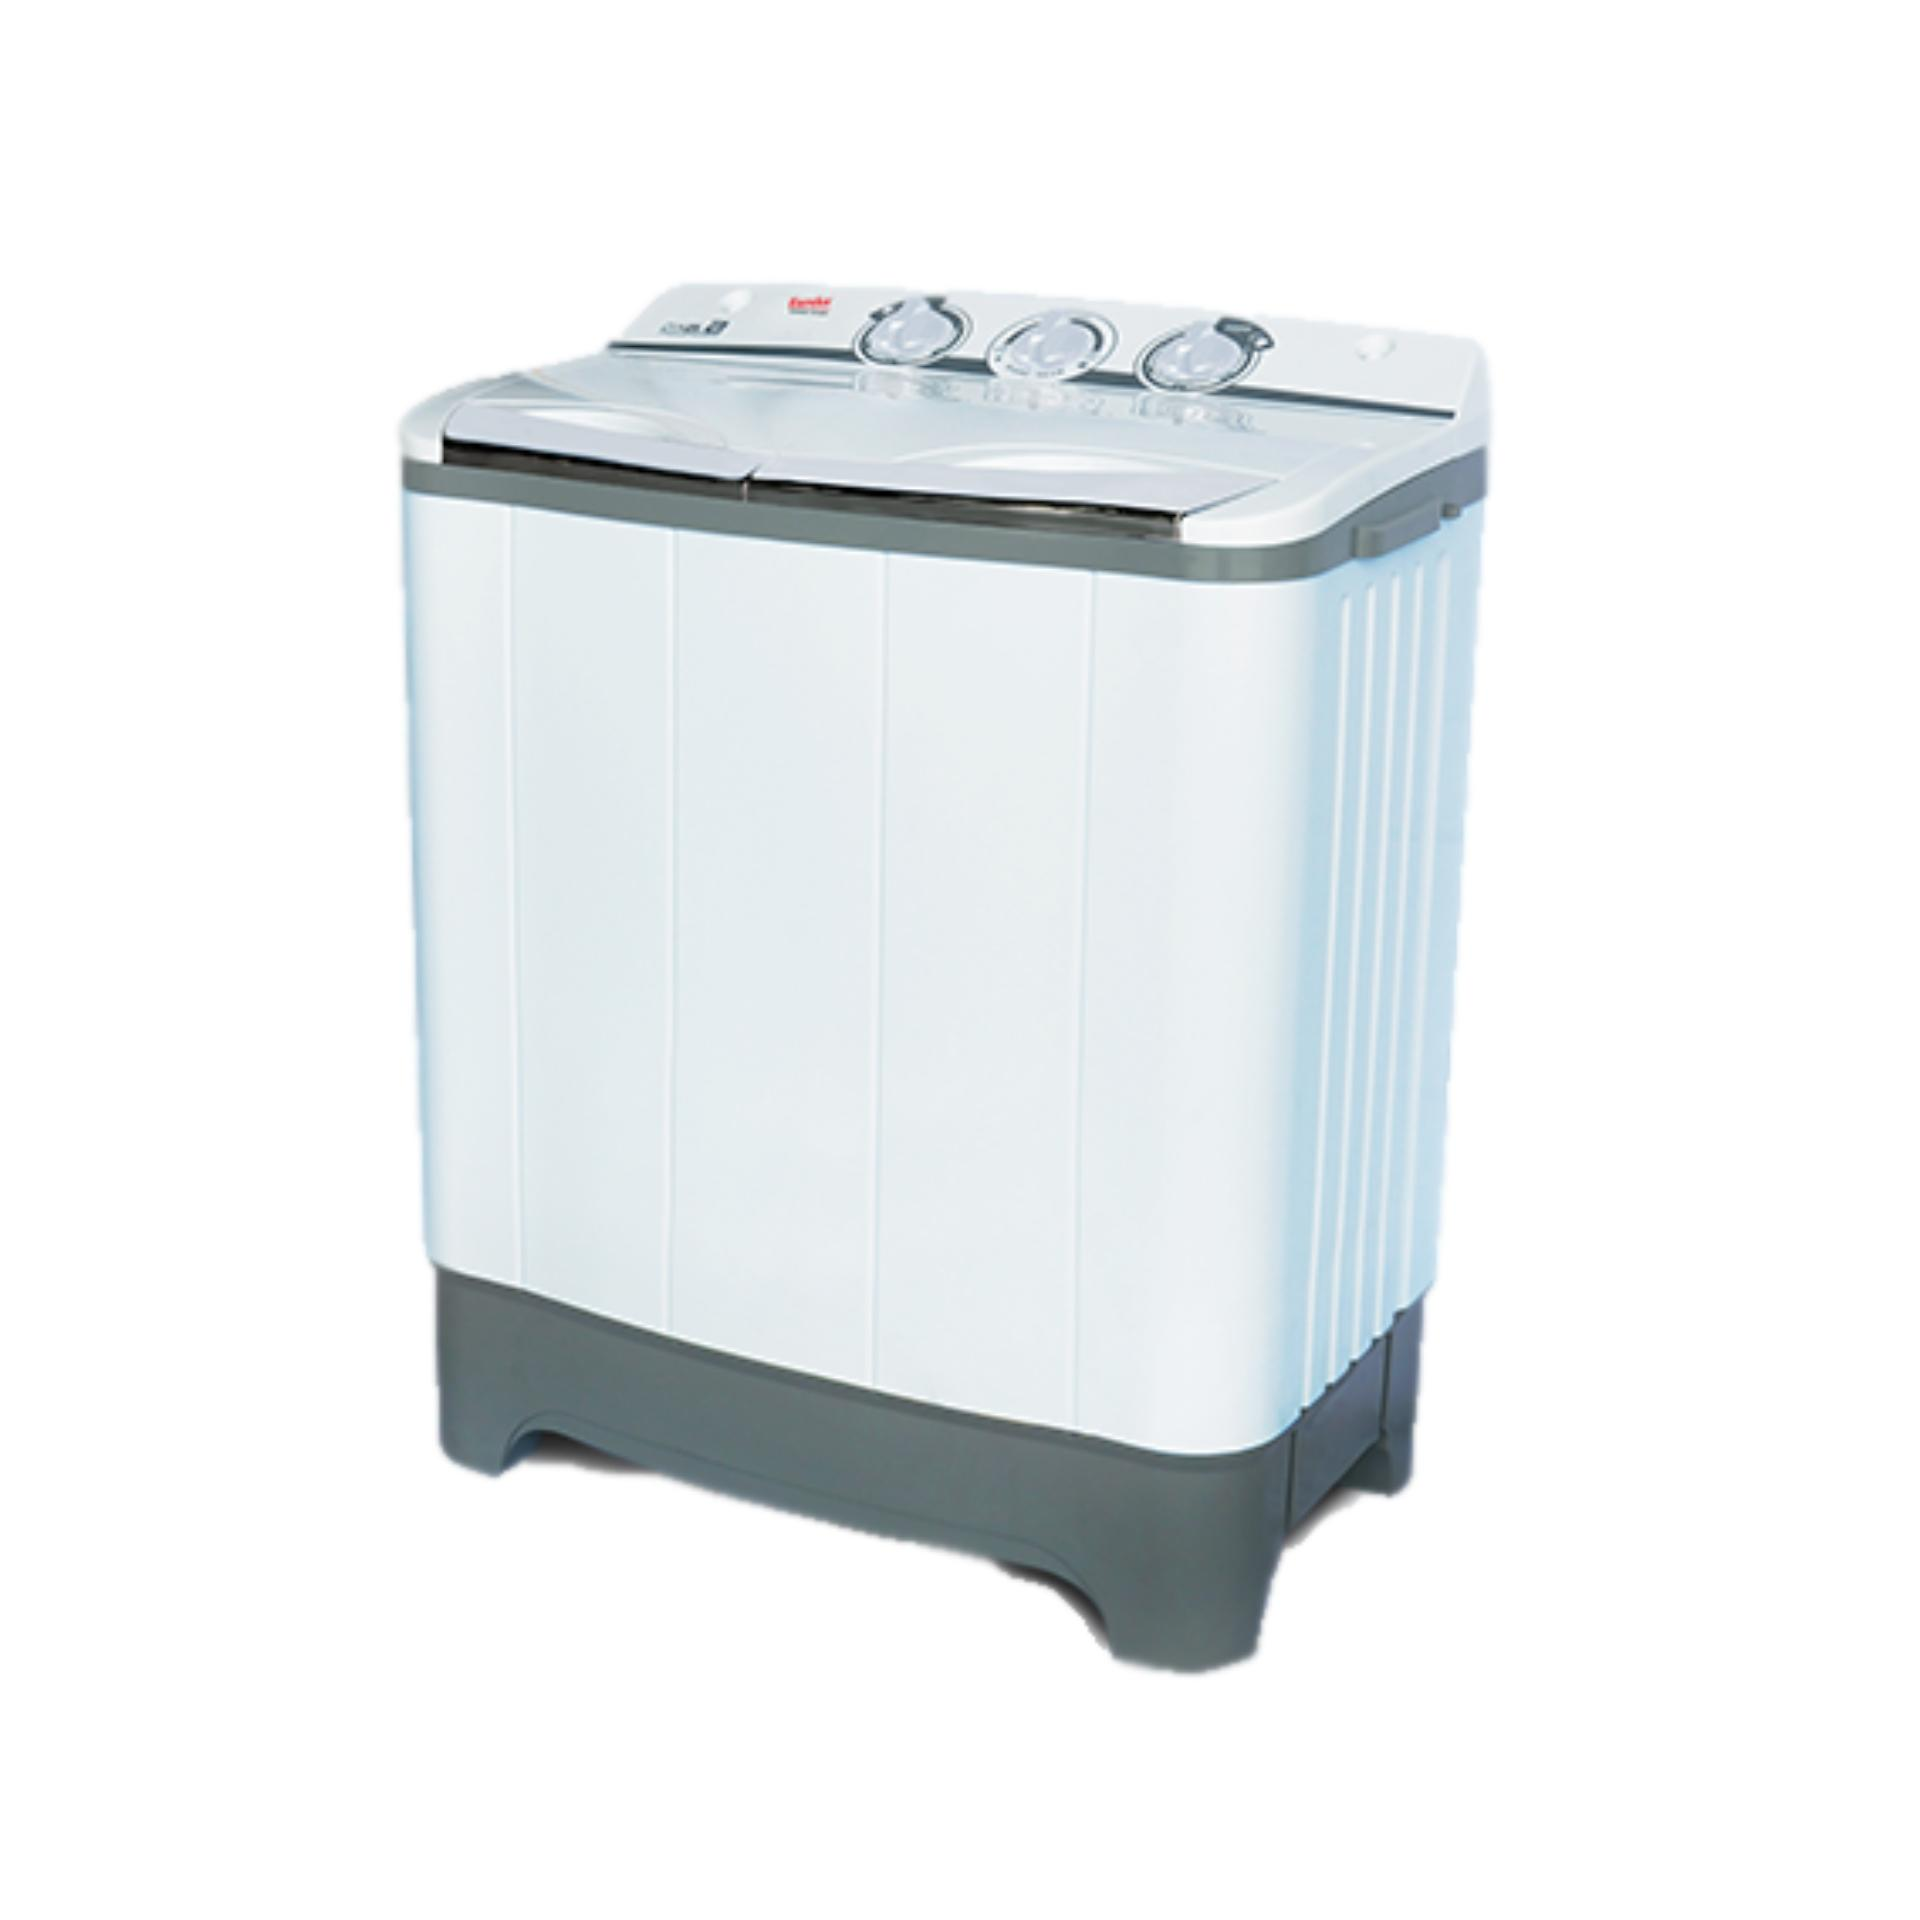 Washing Machine For Sale Washer Prices Brands Review In